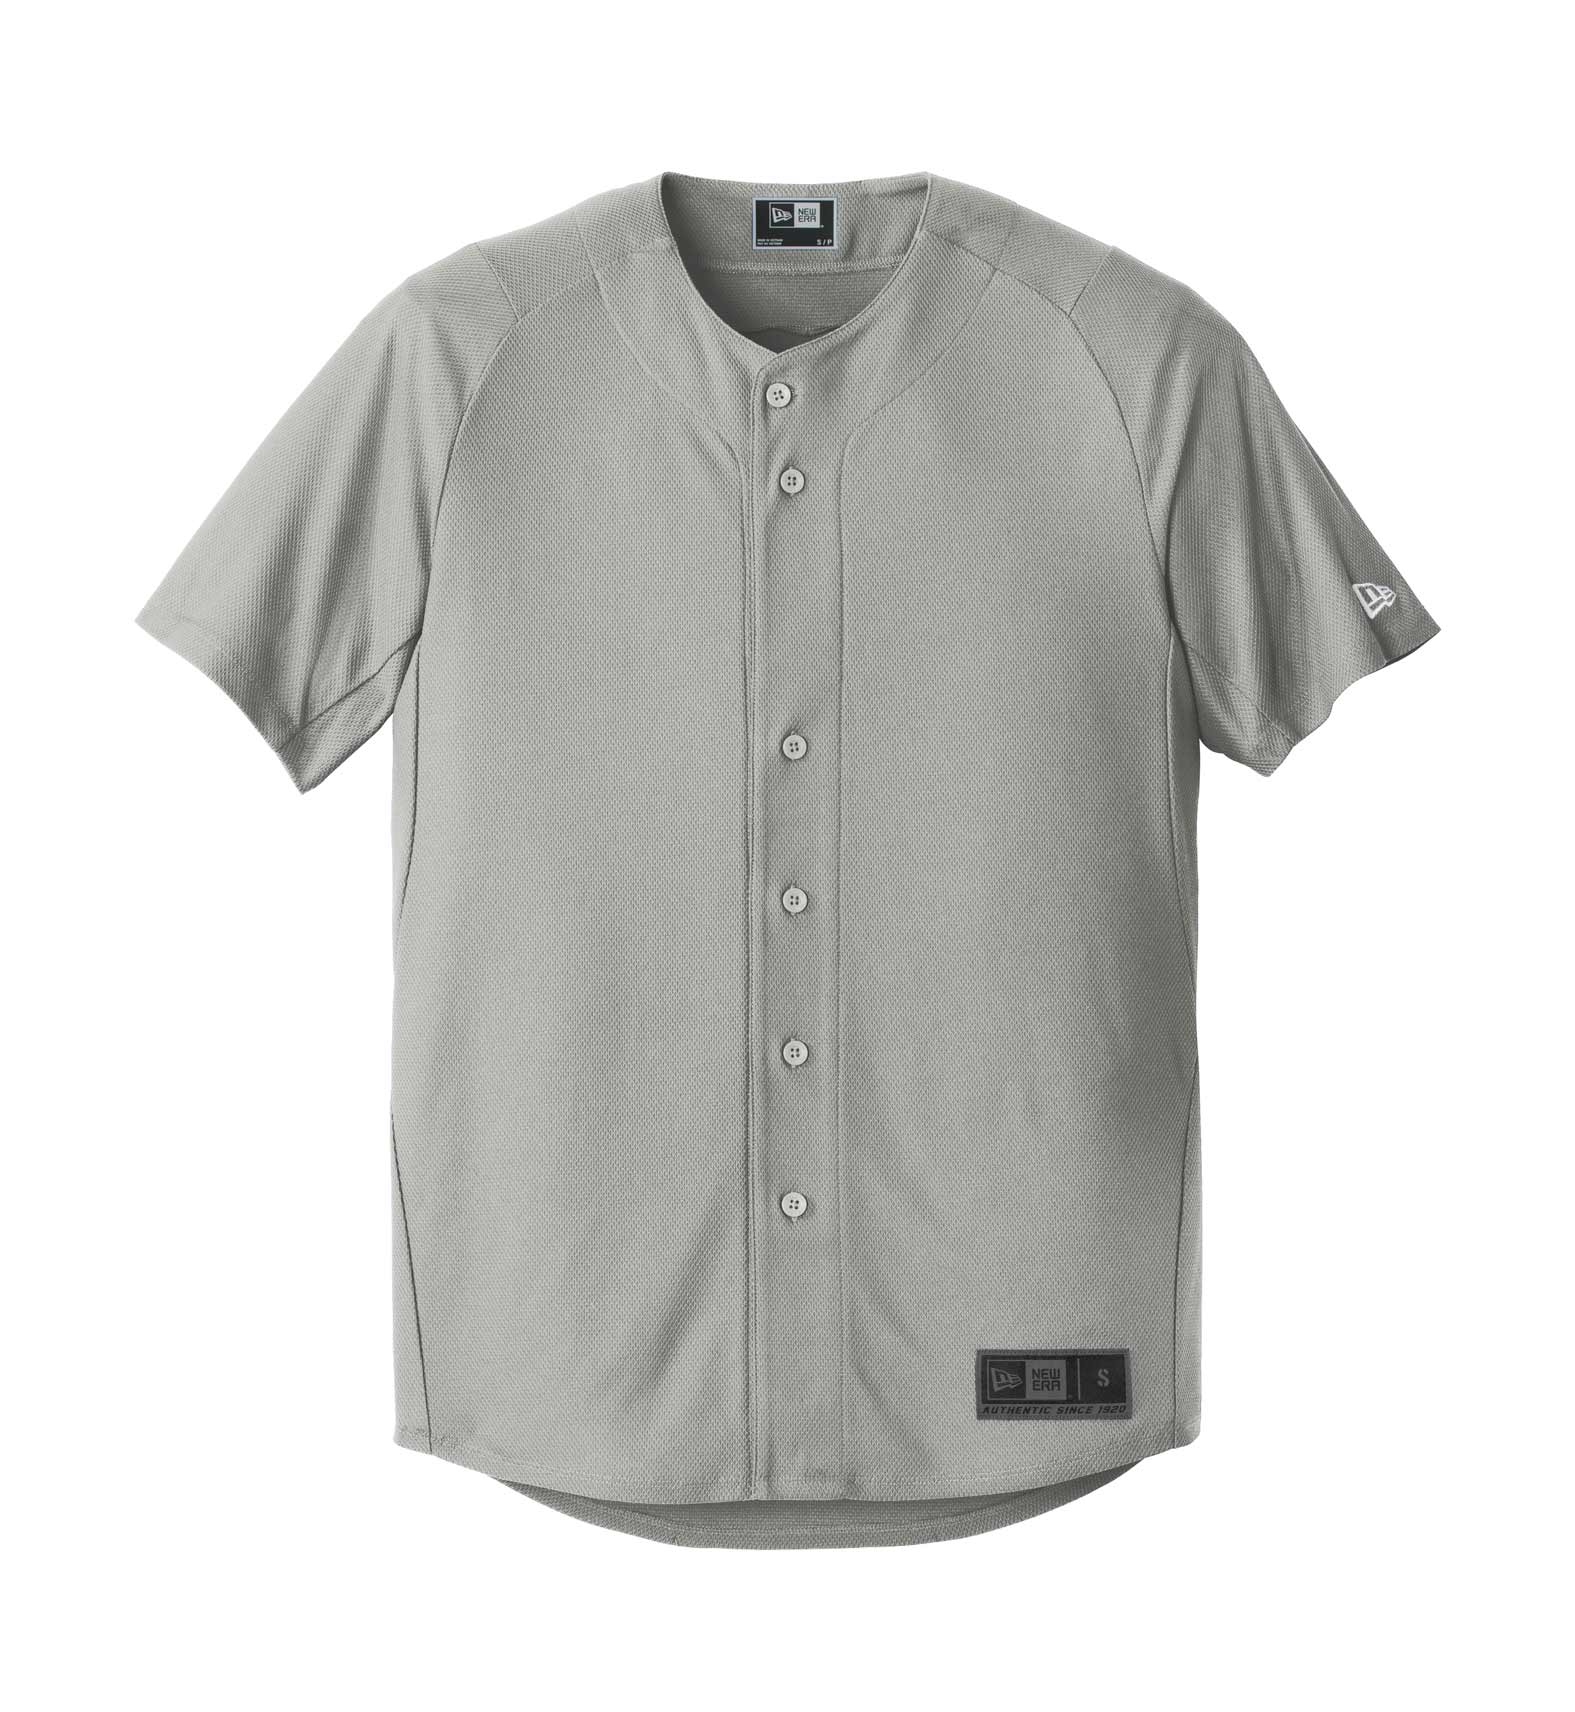 New Era® Mens Diamond Era Full-Button Jersey